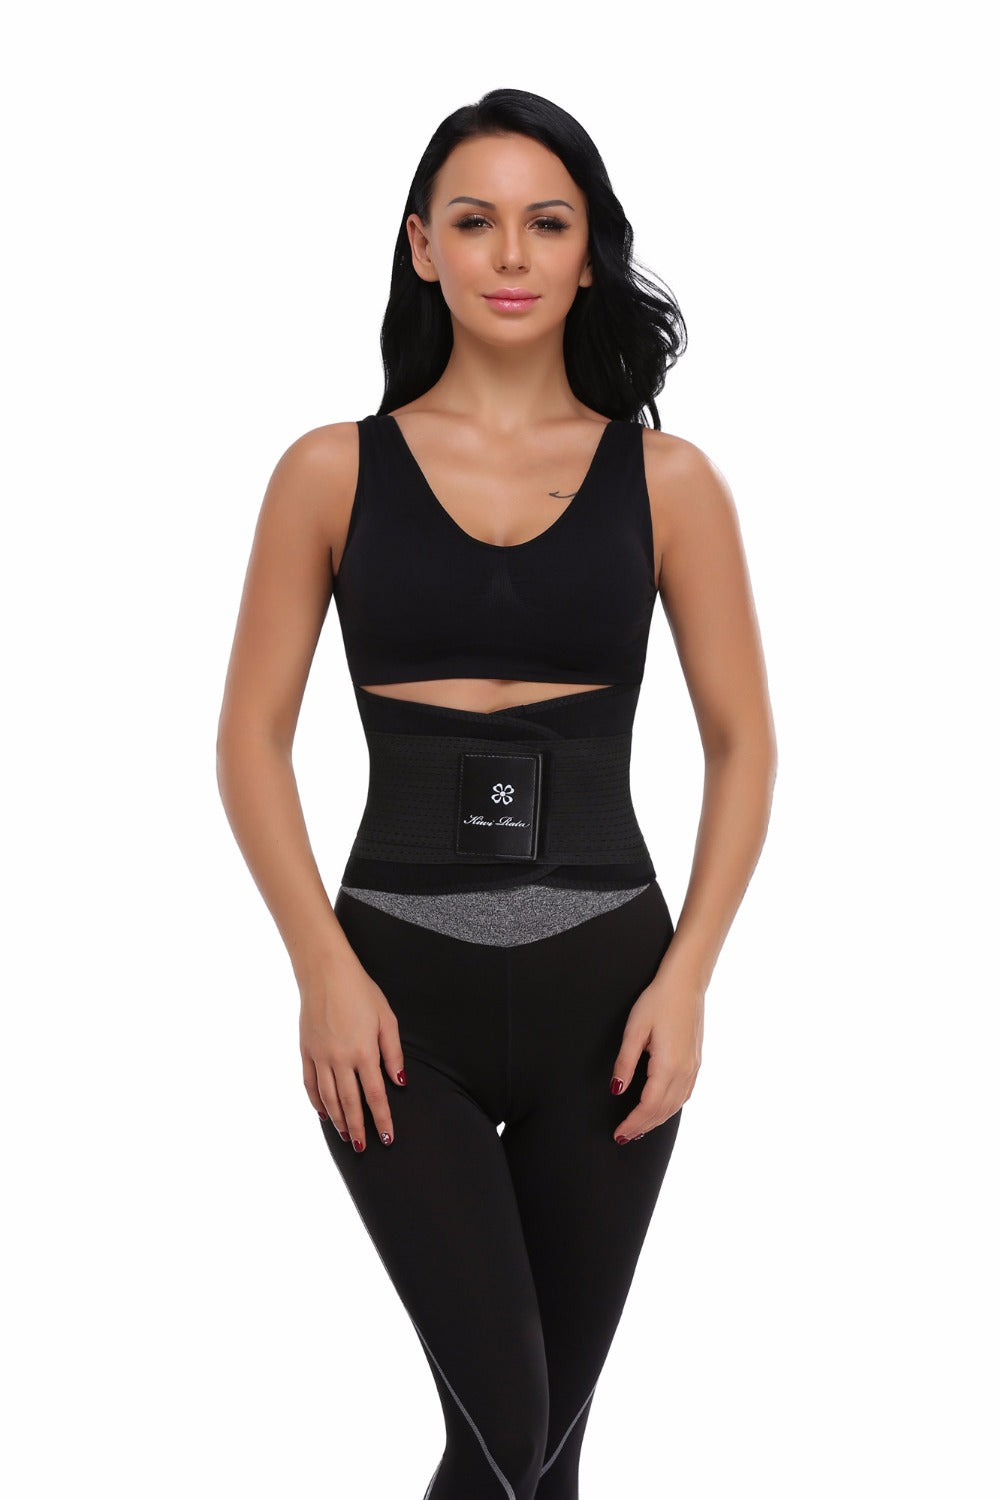 Xtreme Thermo Power Hot Body Shaper